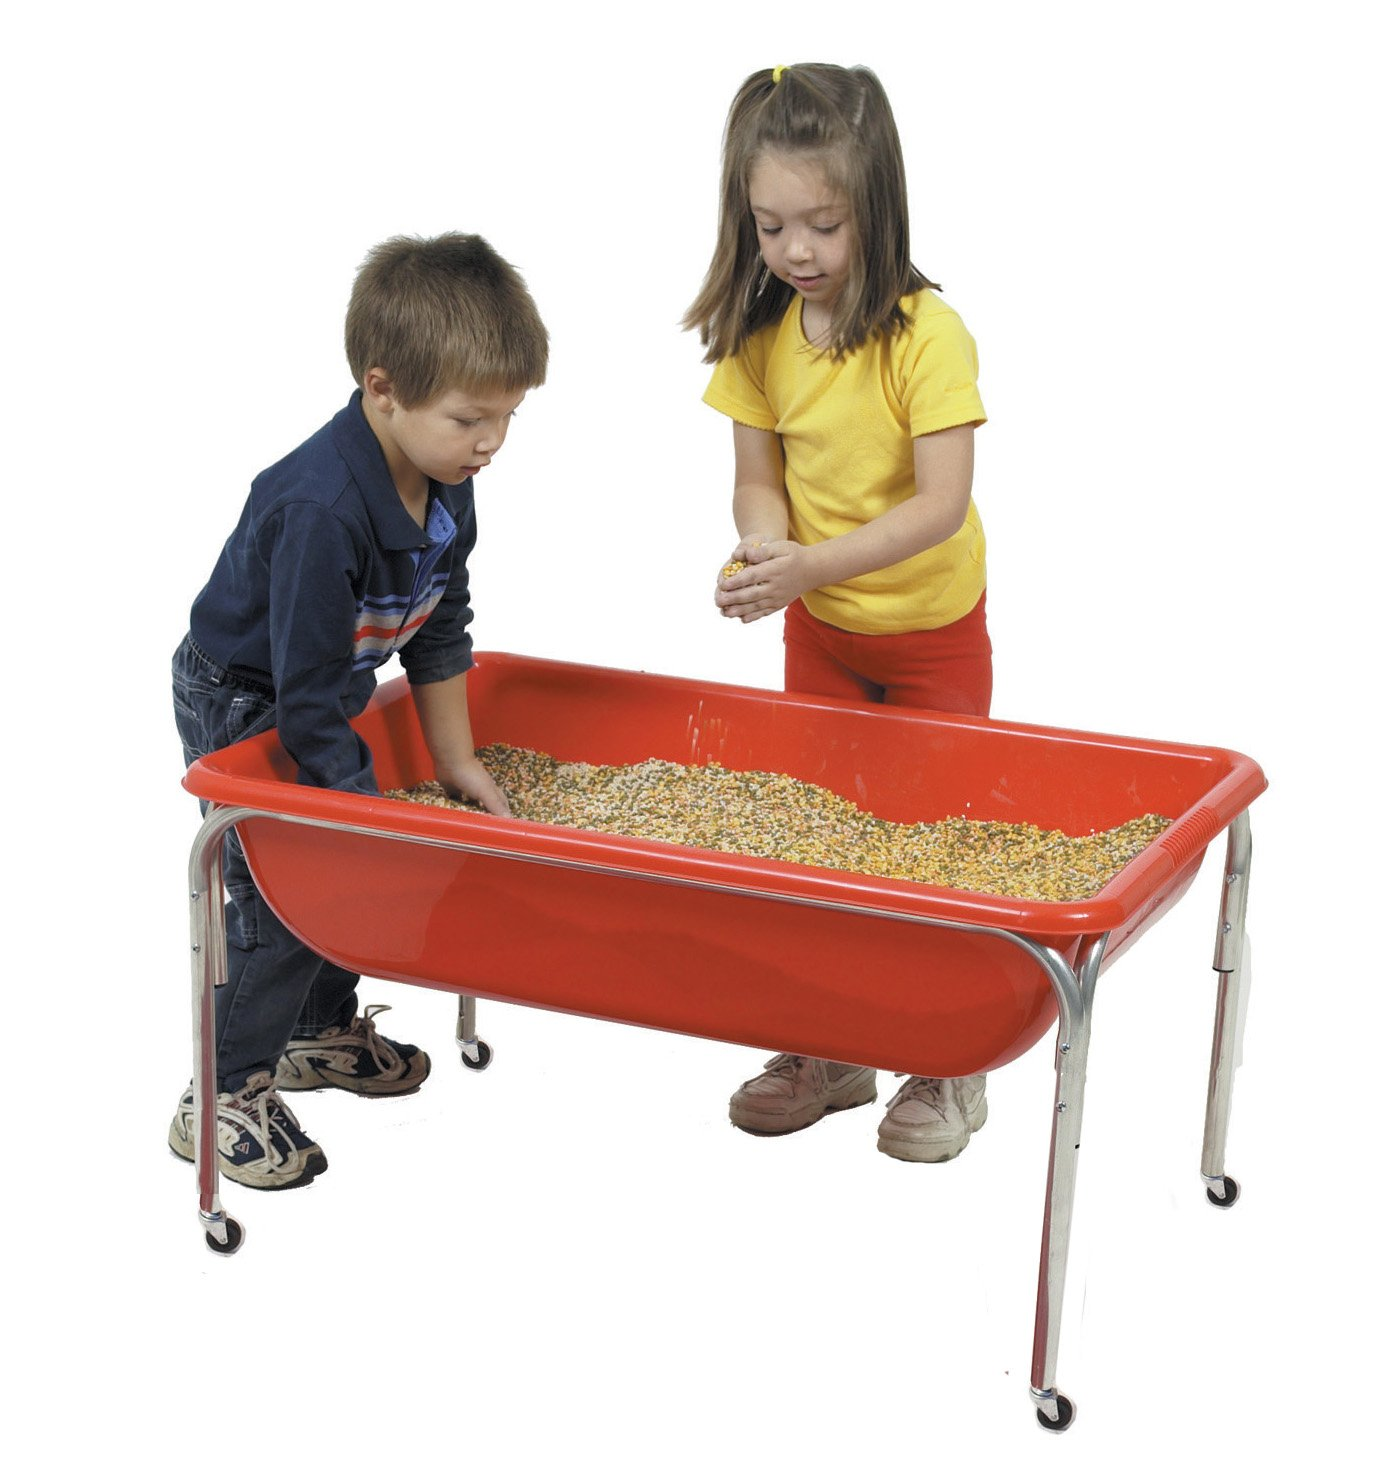 Children S Factory Large Sensory Table 36 By 24 By 24 Red Fill With Water Sand Beads And More Includes Casters For Easy Movement Made Of